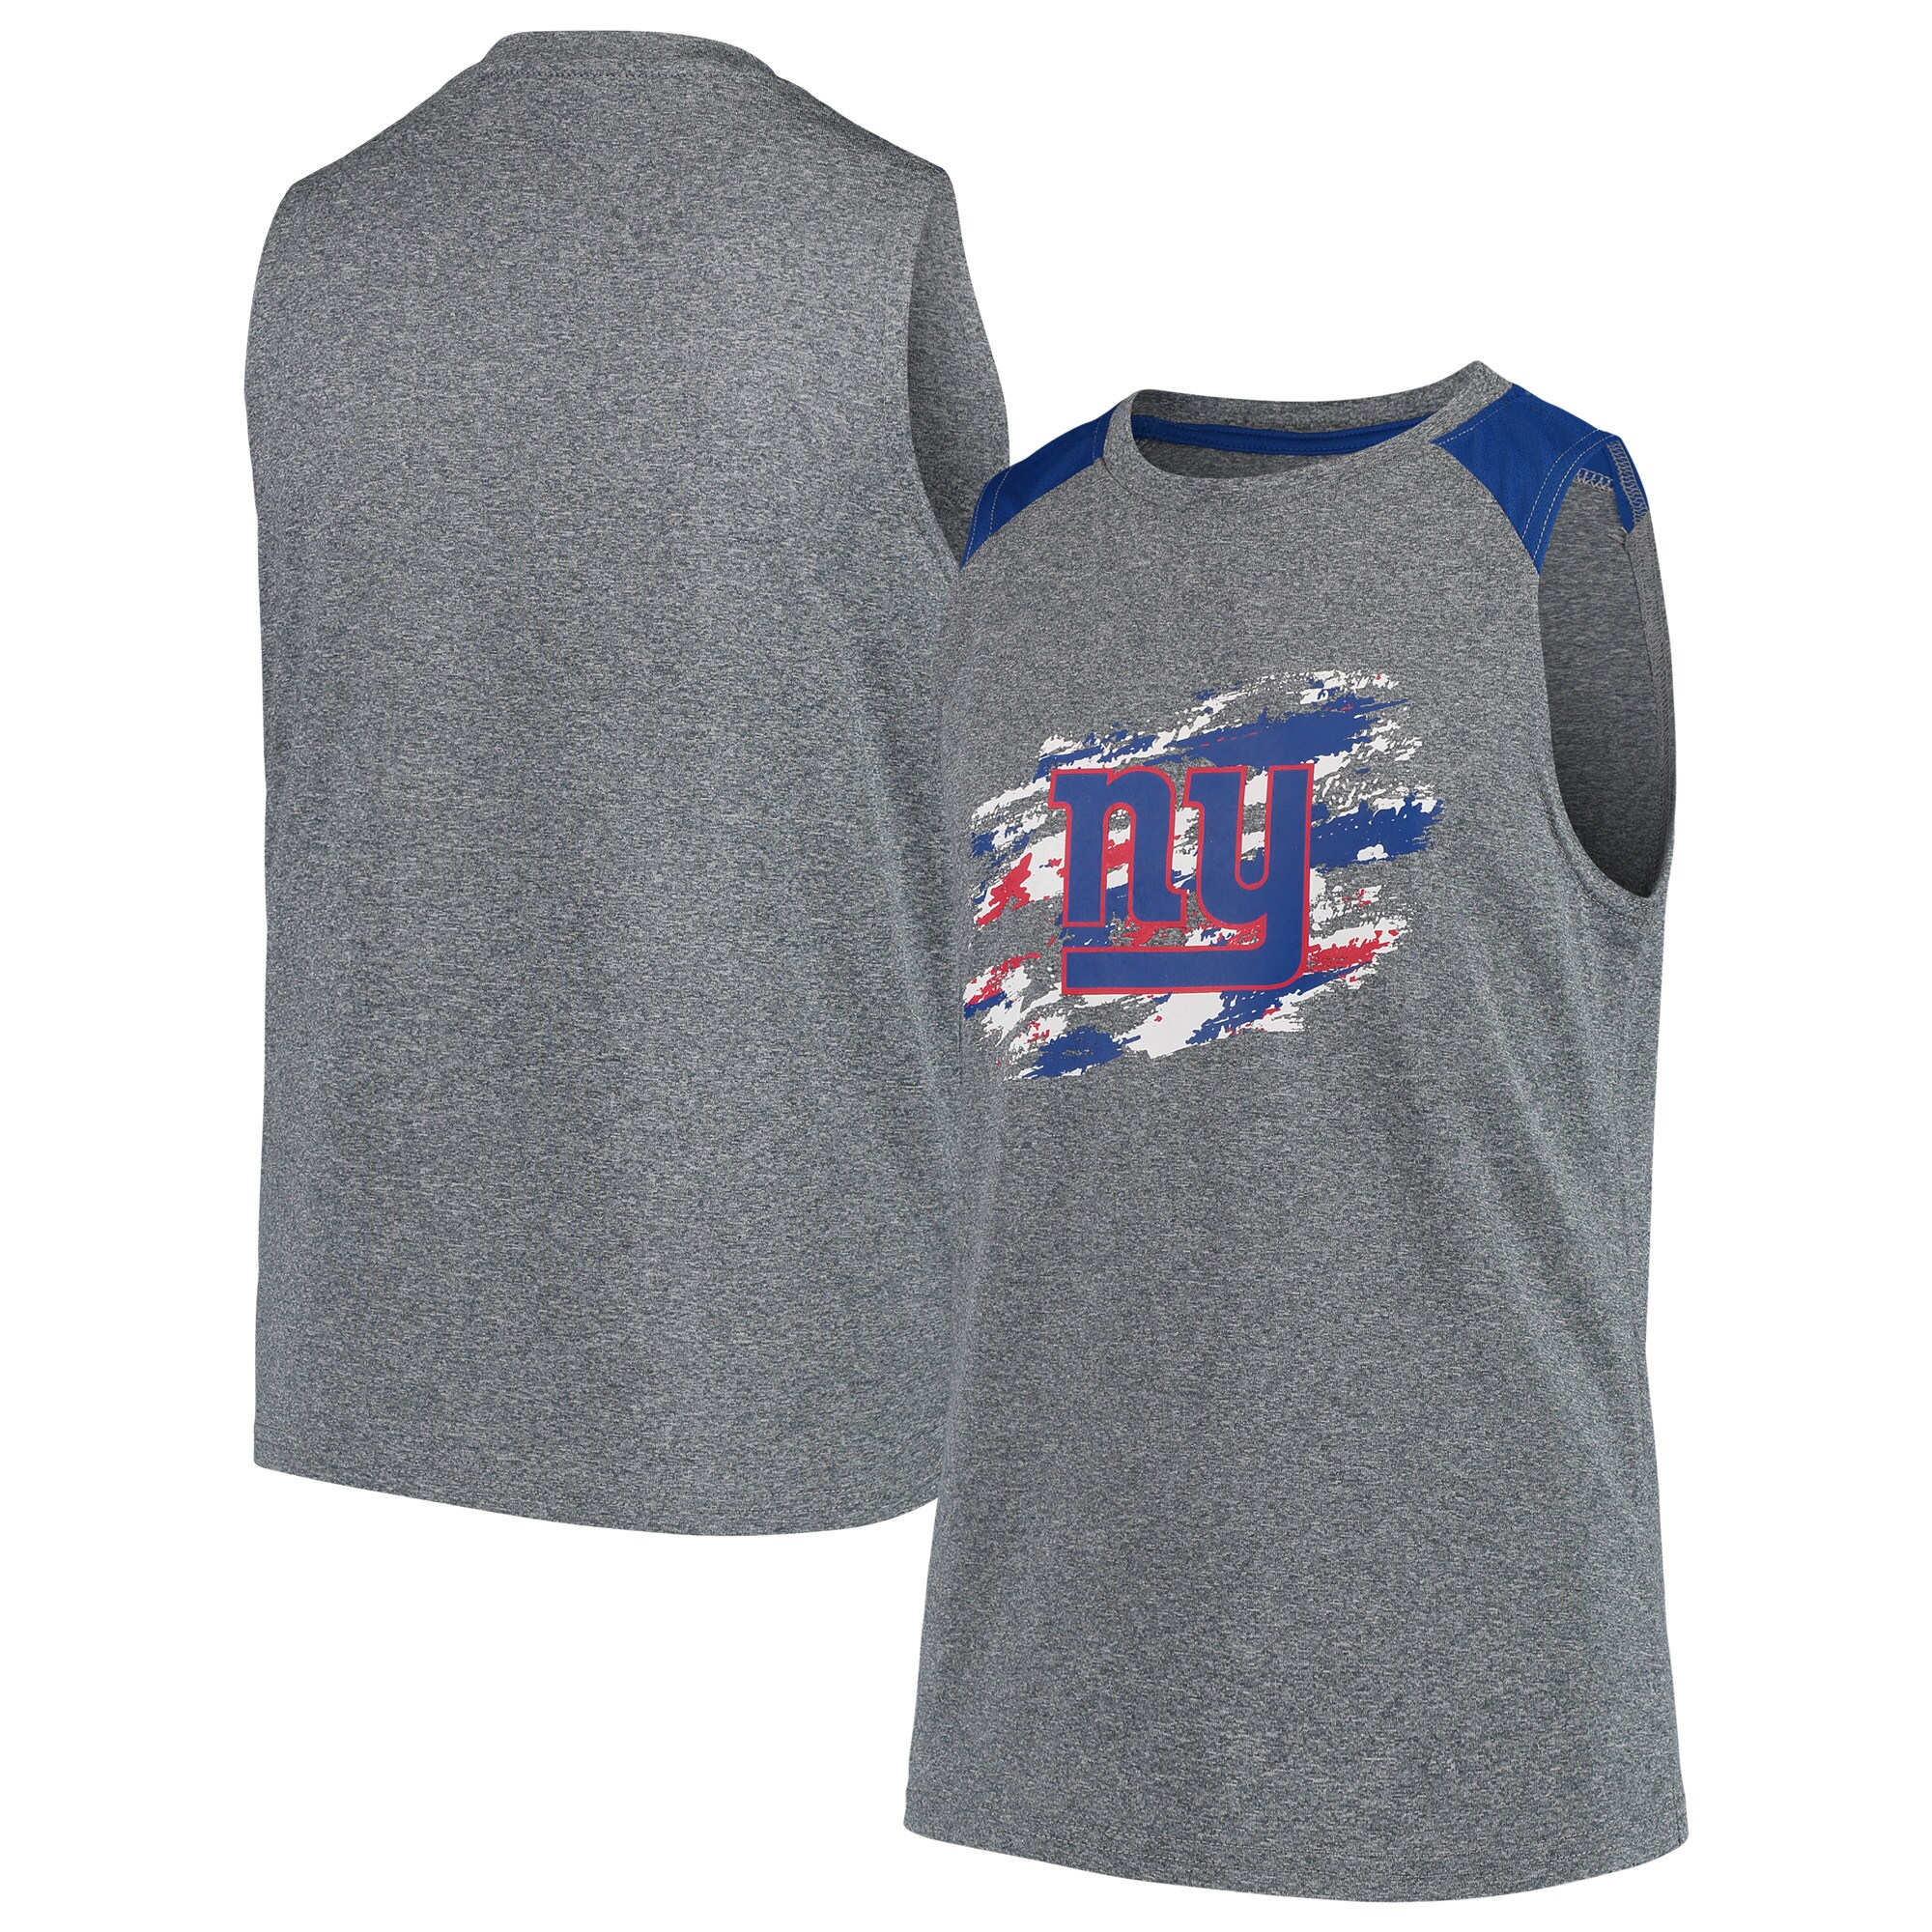 New York Giants NFL Pro Line by Fanatics Branded Youth True Colors Sleeveless T-Shirt - Heathered Gray